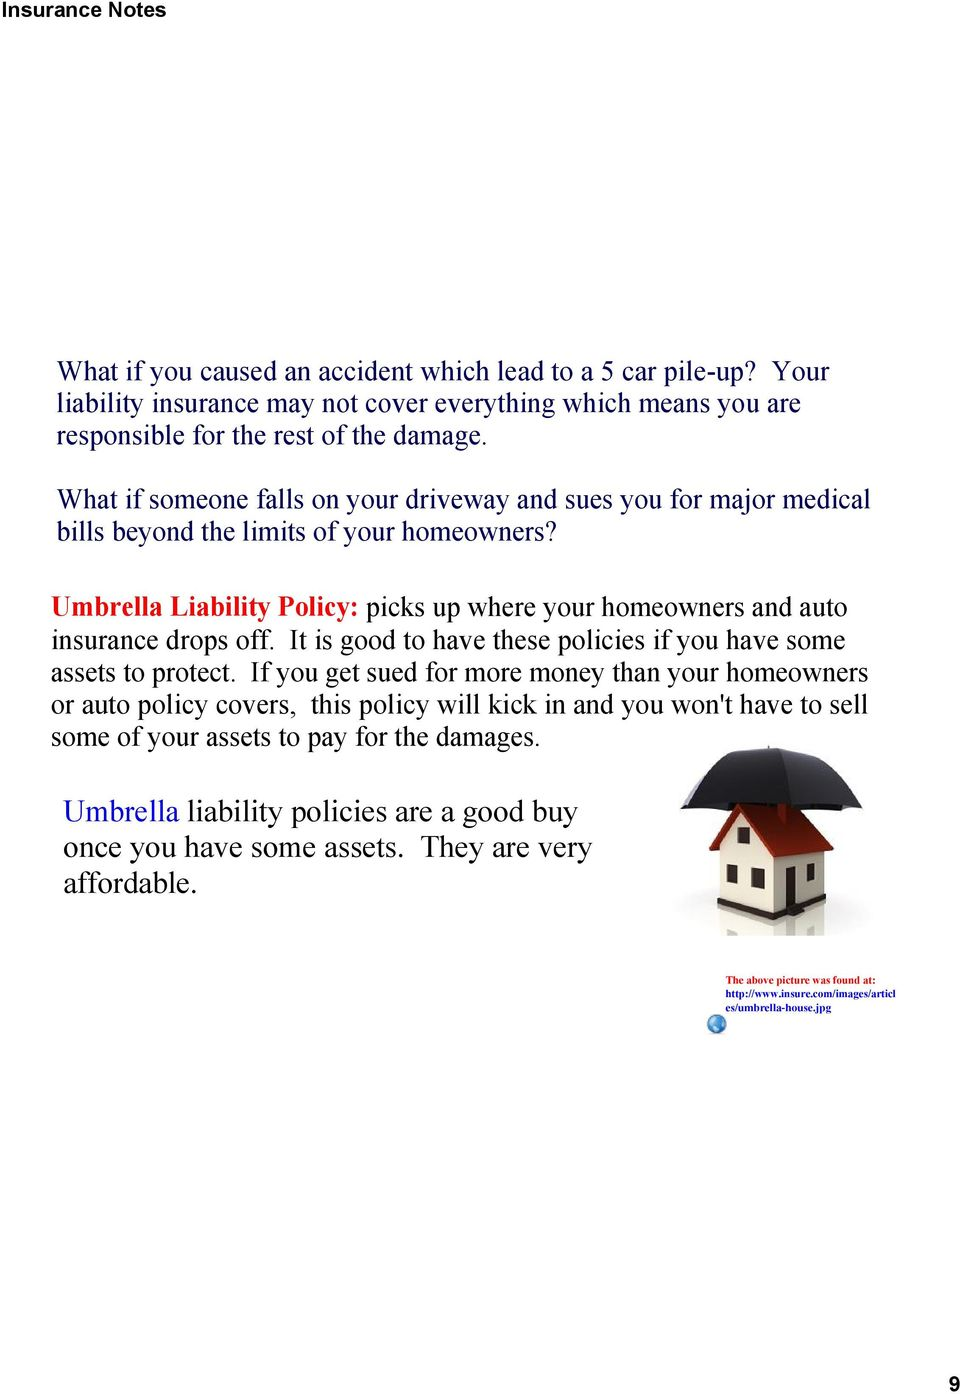 Umbrella Liability Policy: picks up where your homeowners and auto insurance drops off. It is good to have these policies if you have some assets to protect.